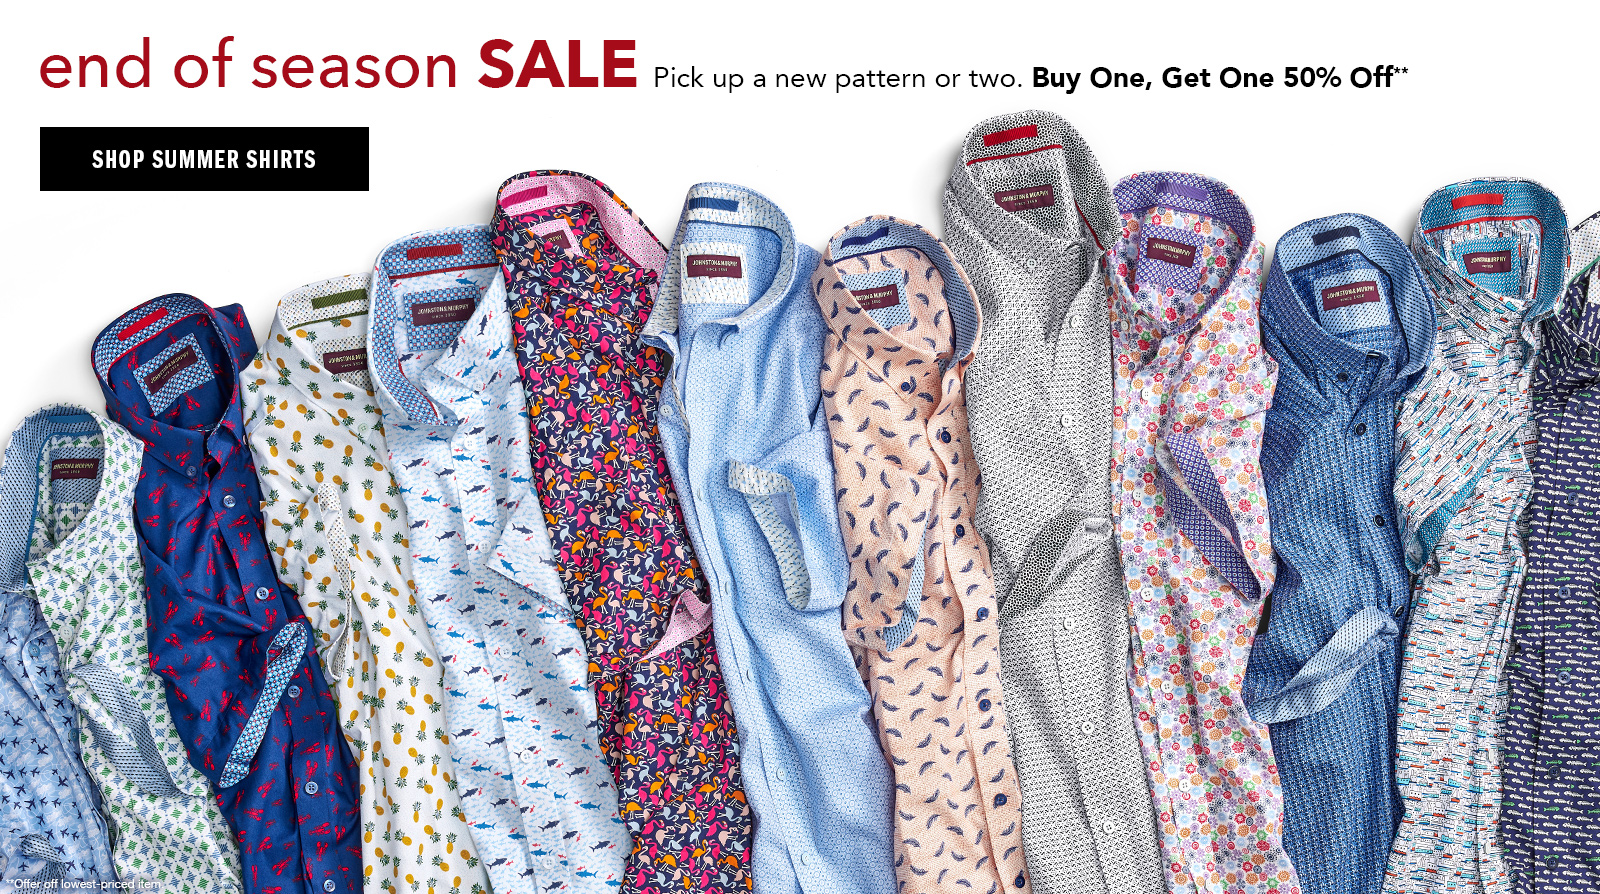 Shop Men's Shirts - Buy One, Get One 50% Off